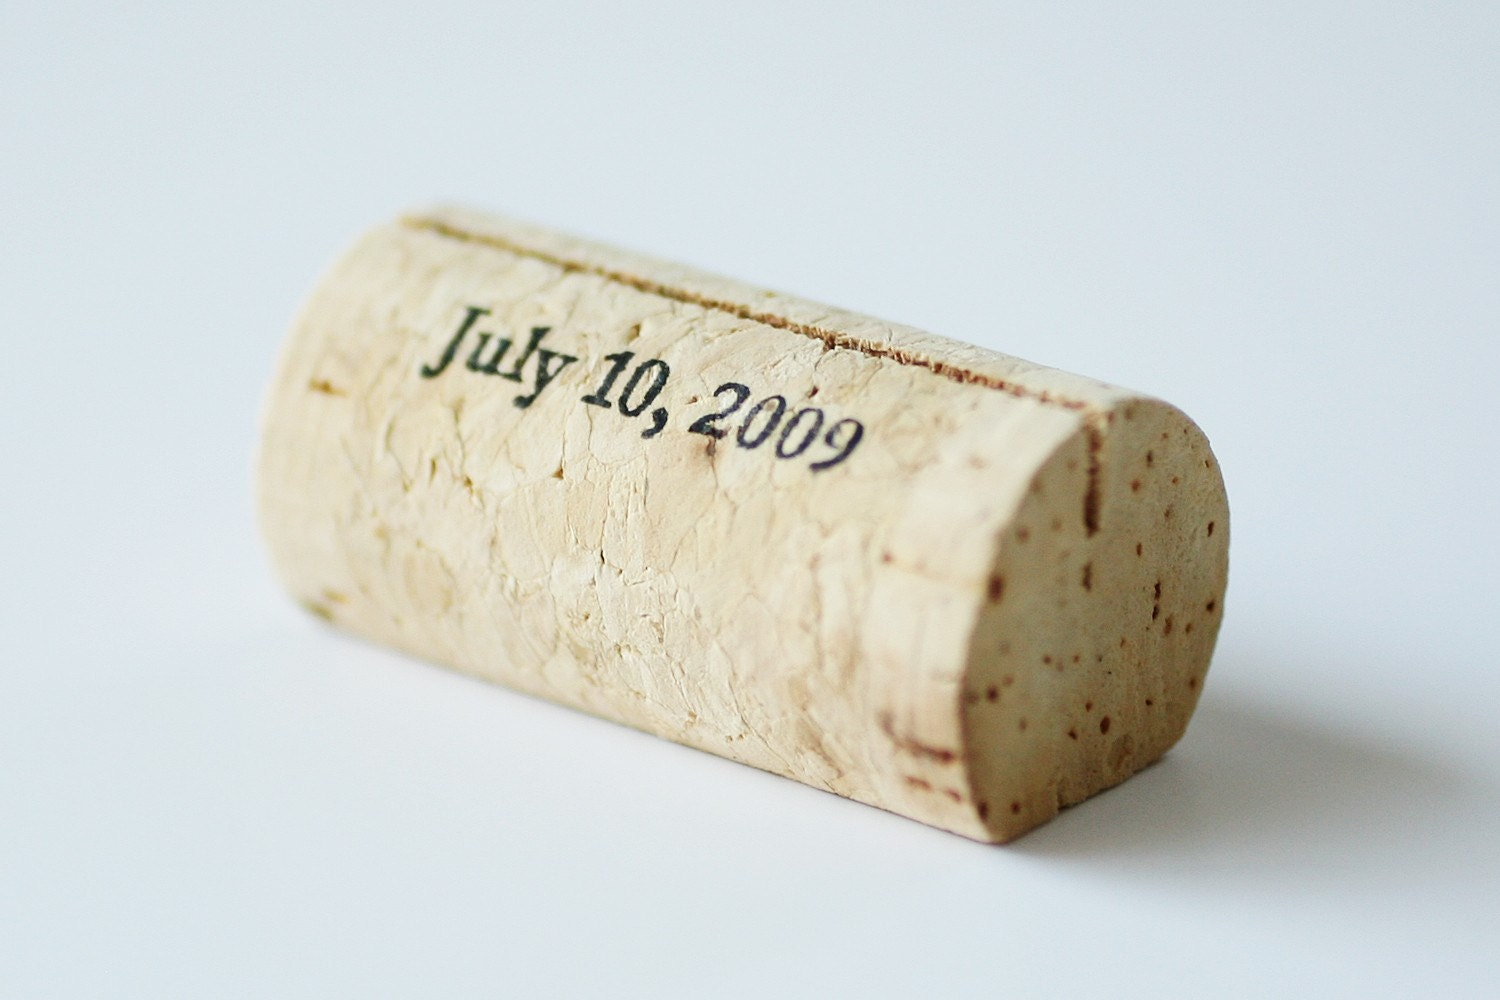 You Totally Should Its Full Of Useful Information Ideas And Other Resources For Planning A Handmade Wedding Like These Wine Cork Placecard Holders